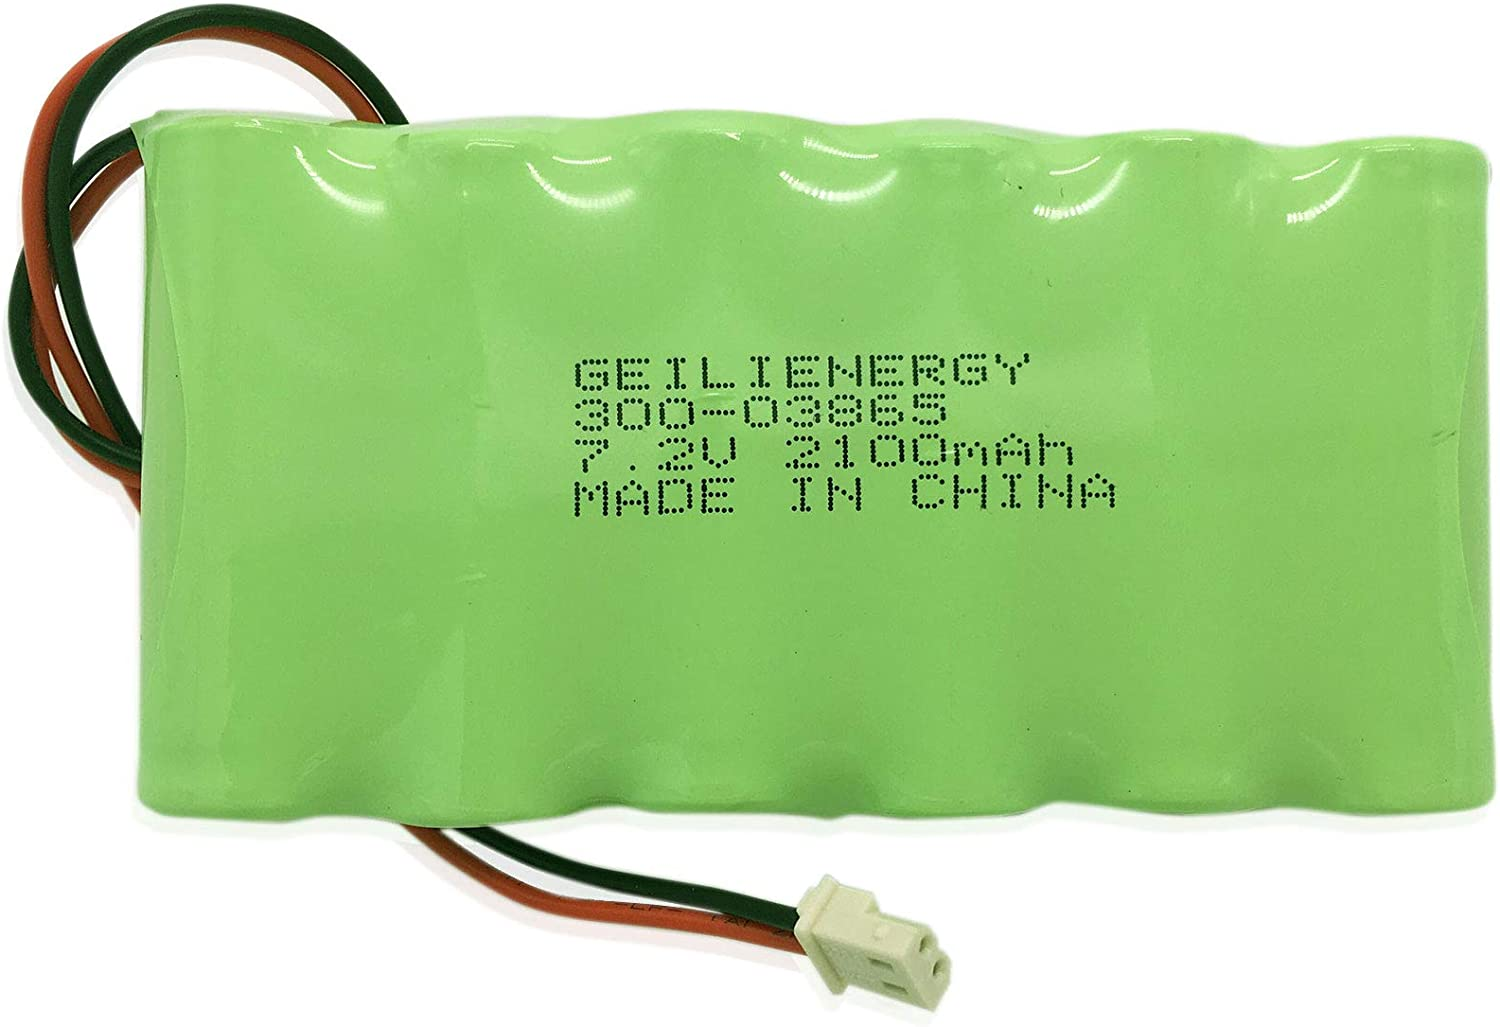 GEILIENERGY 300-03865 Backup Battery for Honeywell?L3000 Lynx Plus,L5000 Lynx Touch,?L5100 Lynx Touch, L5200 Lynx Touch LYNXRCHKIT-HC ?Wireless Alarm Control Panels